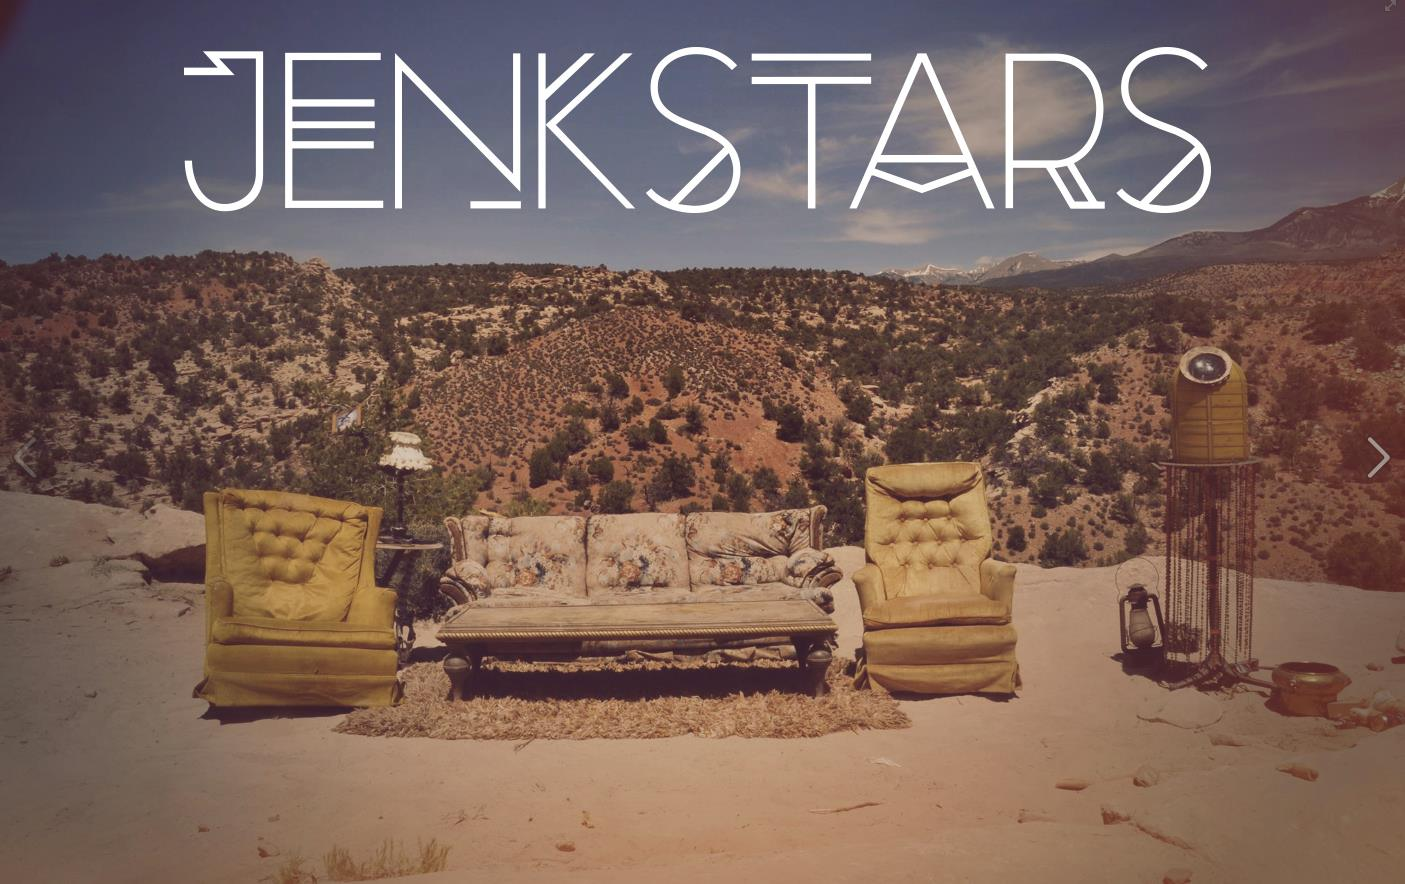 Home of buildingman - The Jenkstar Ranch is a 40 acre parcel nestled in the desert near the banks of the Green River